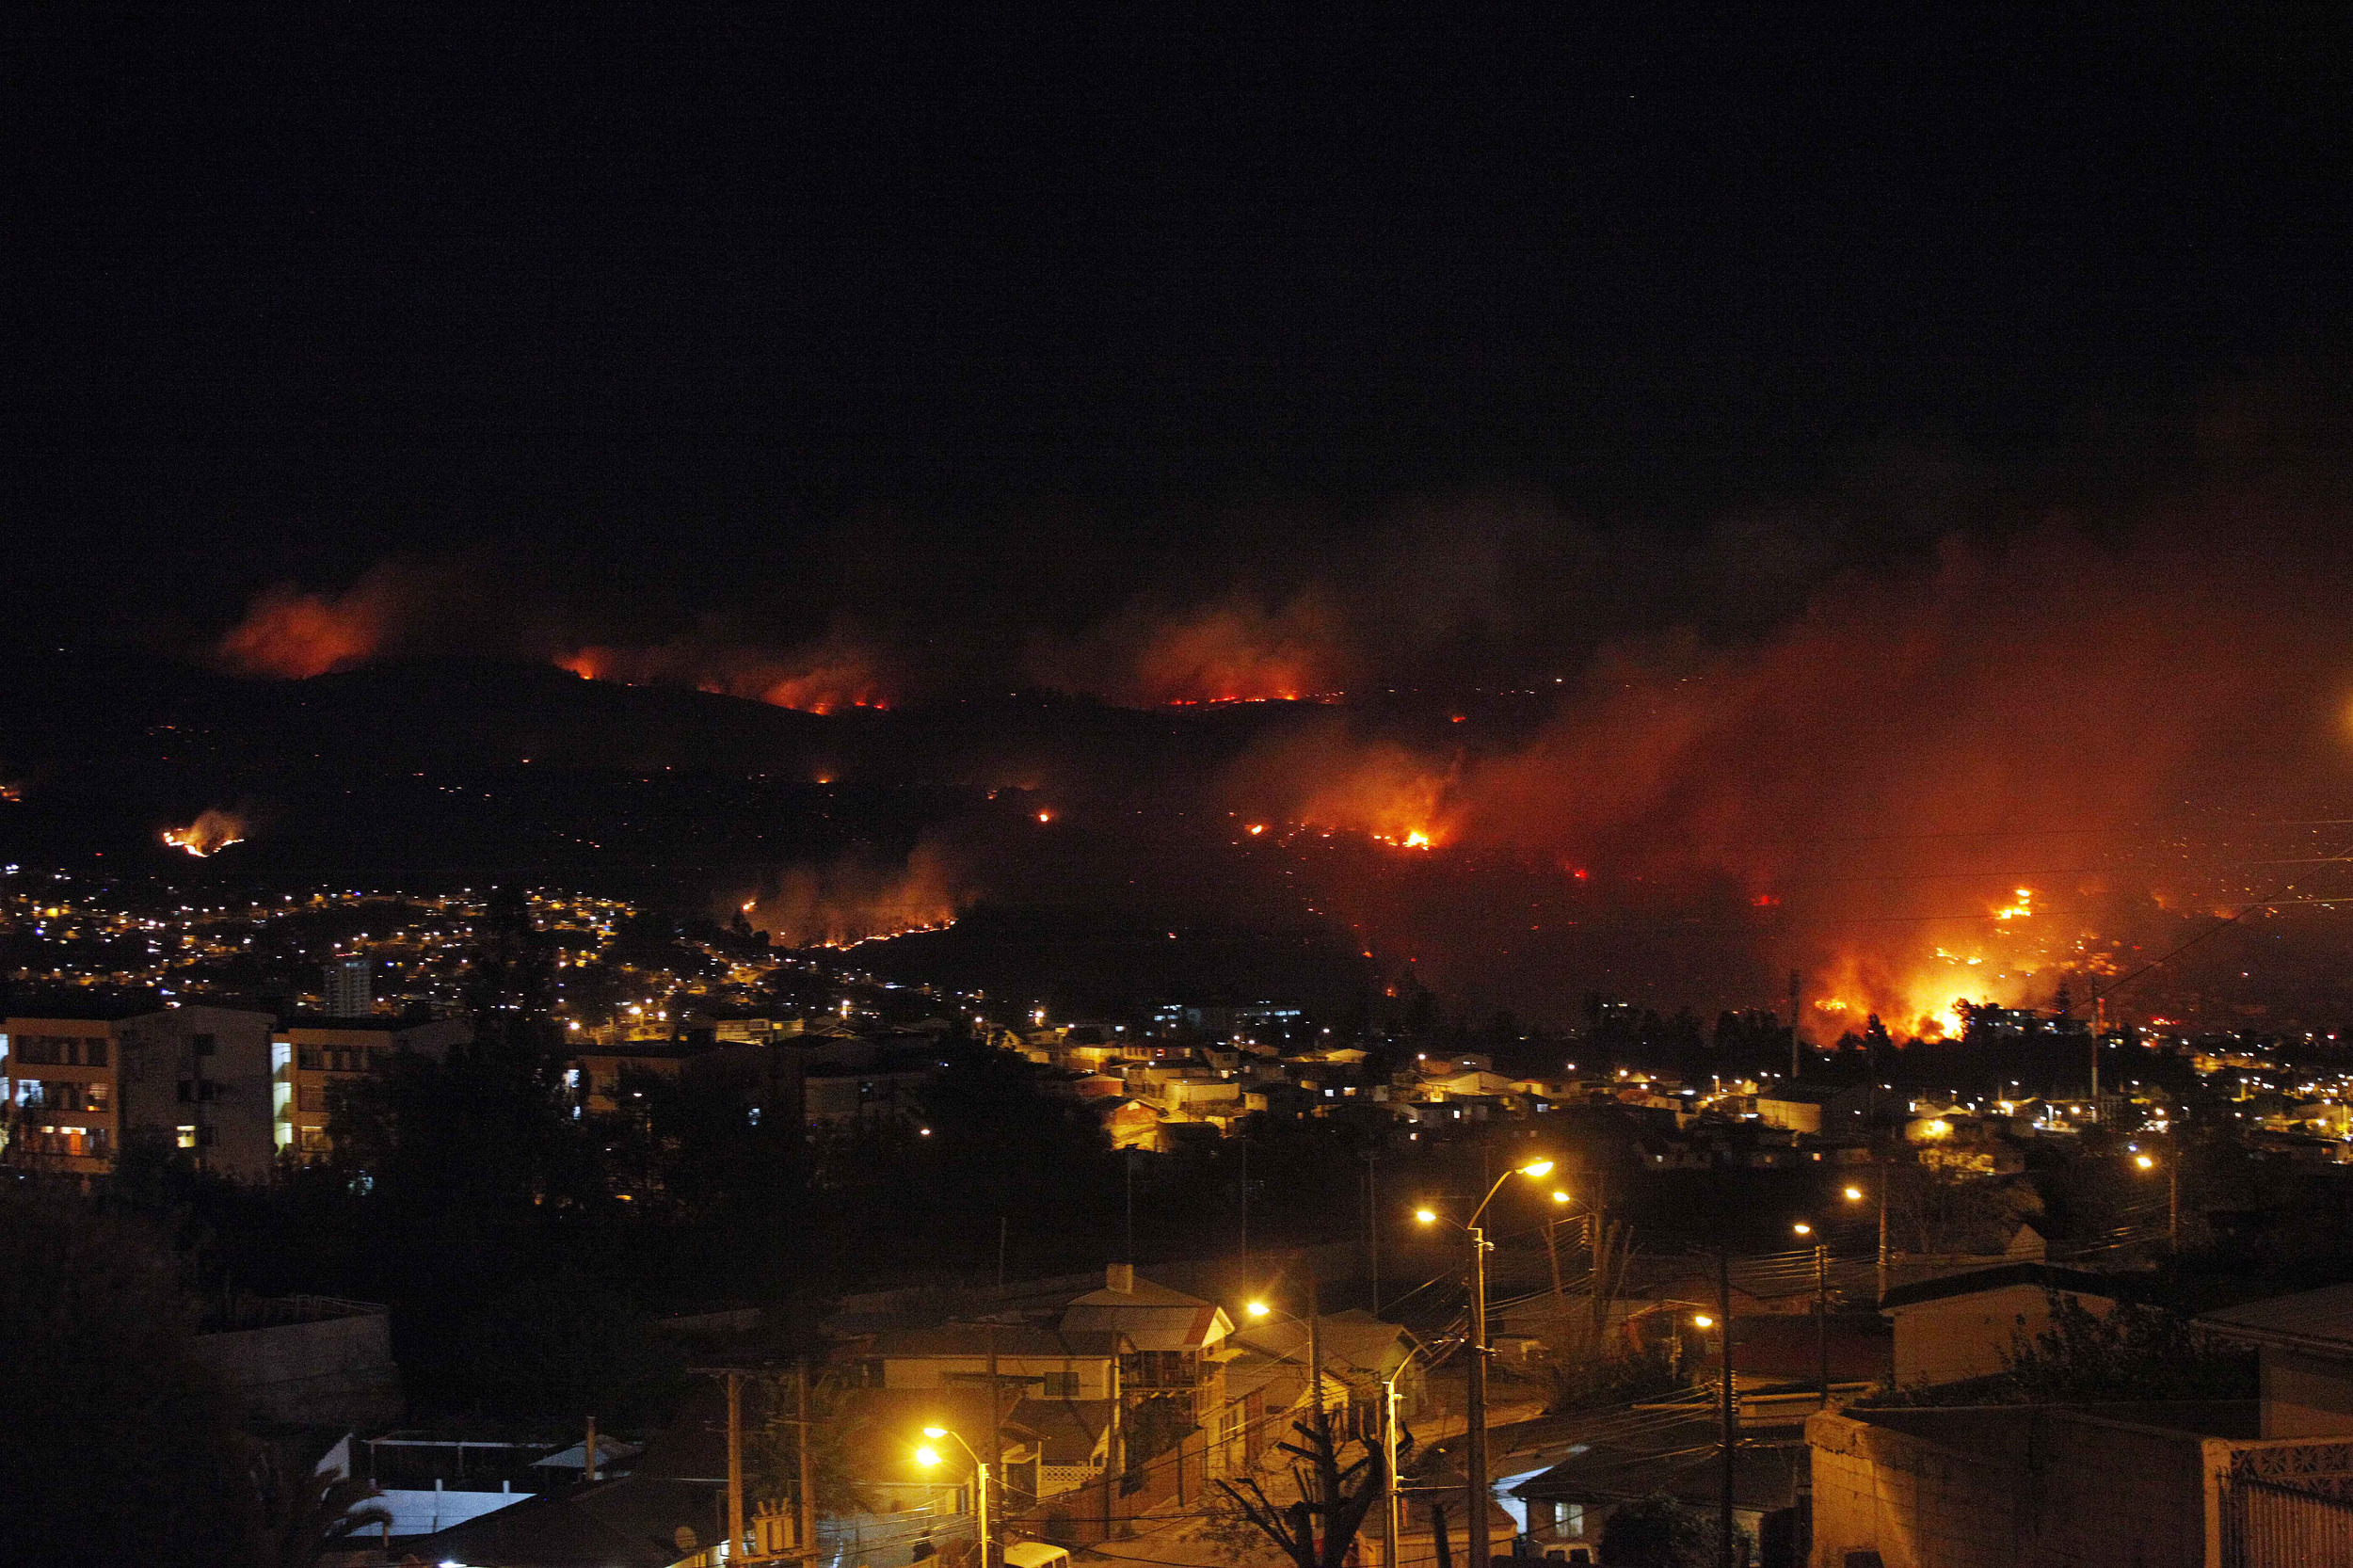 http://www.blogcdn.com/slideshows/images/slides/253/241/3/S2532413/slug/l/chile-forest-fire-1.jpg